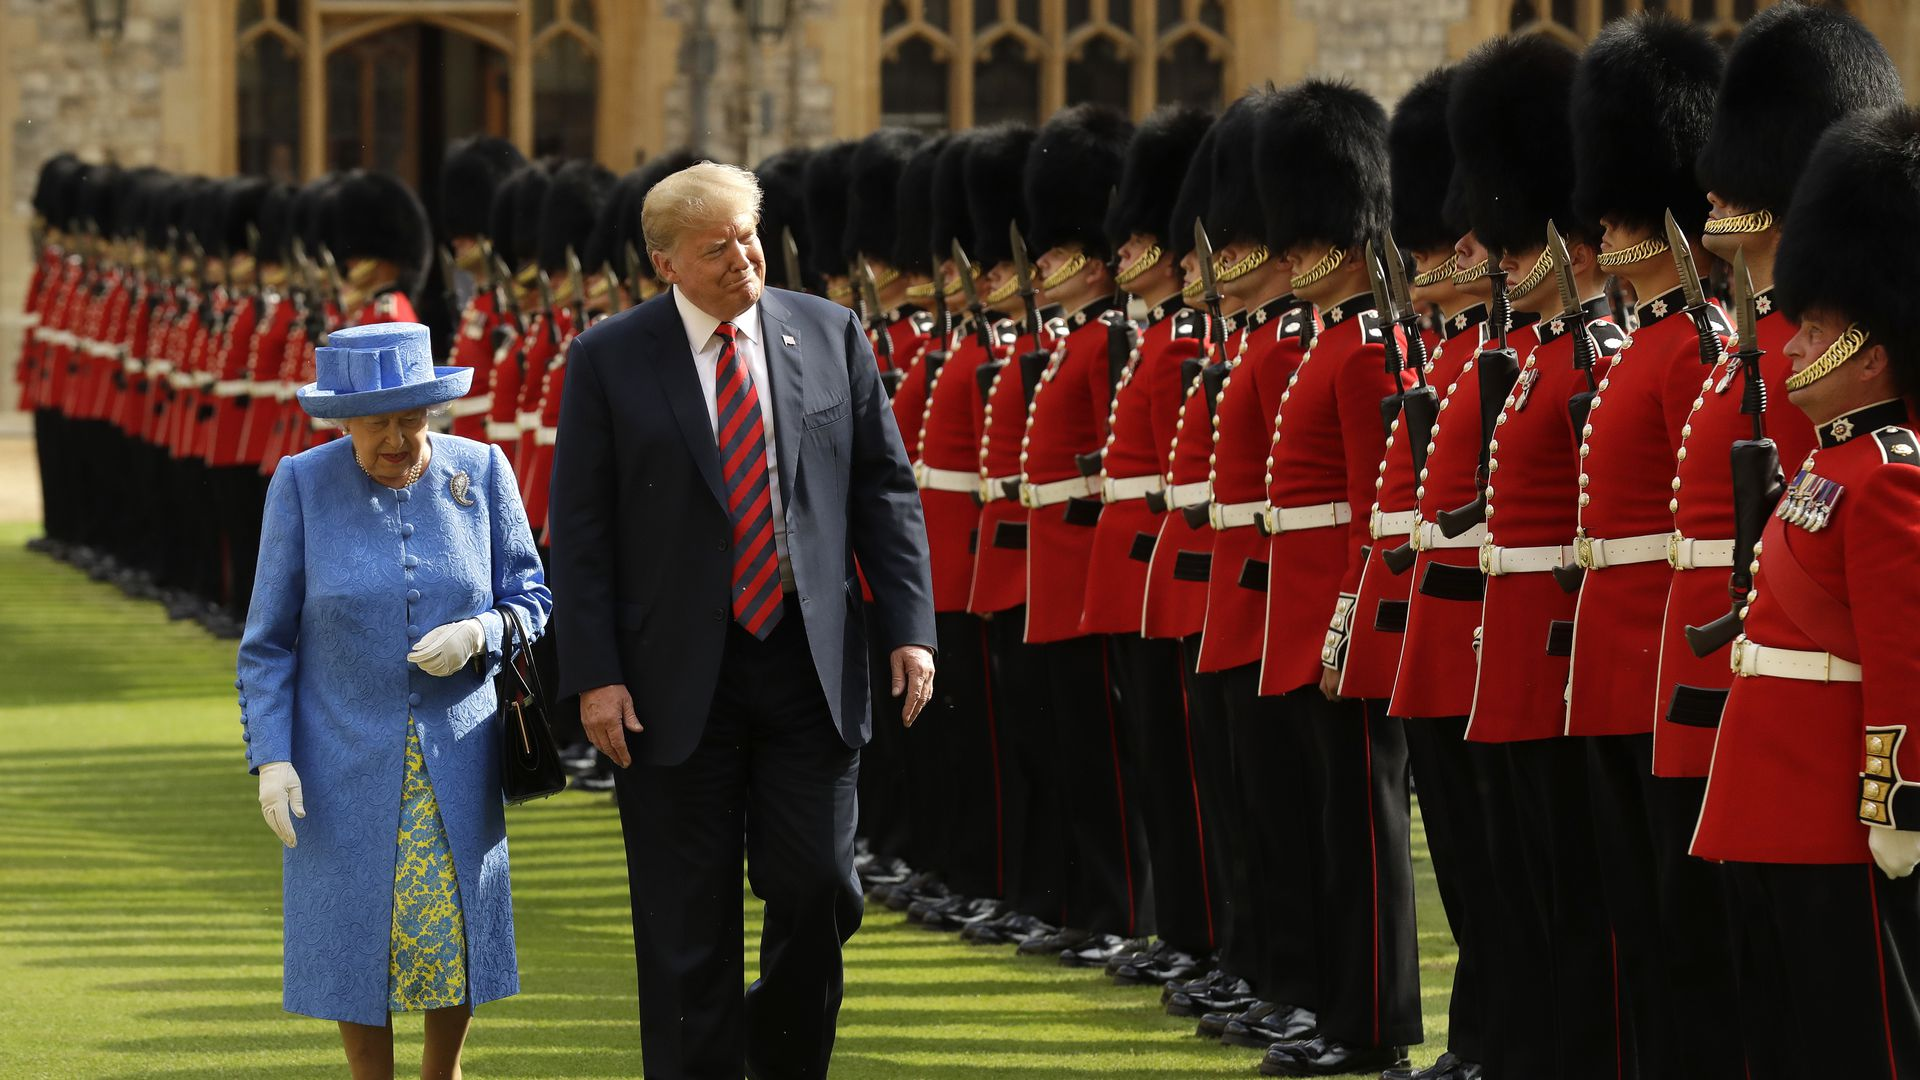 Trump, next to the Queen, walks past a line of guards in British uniform